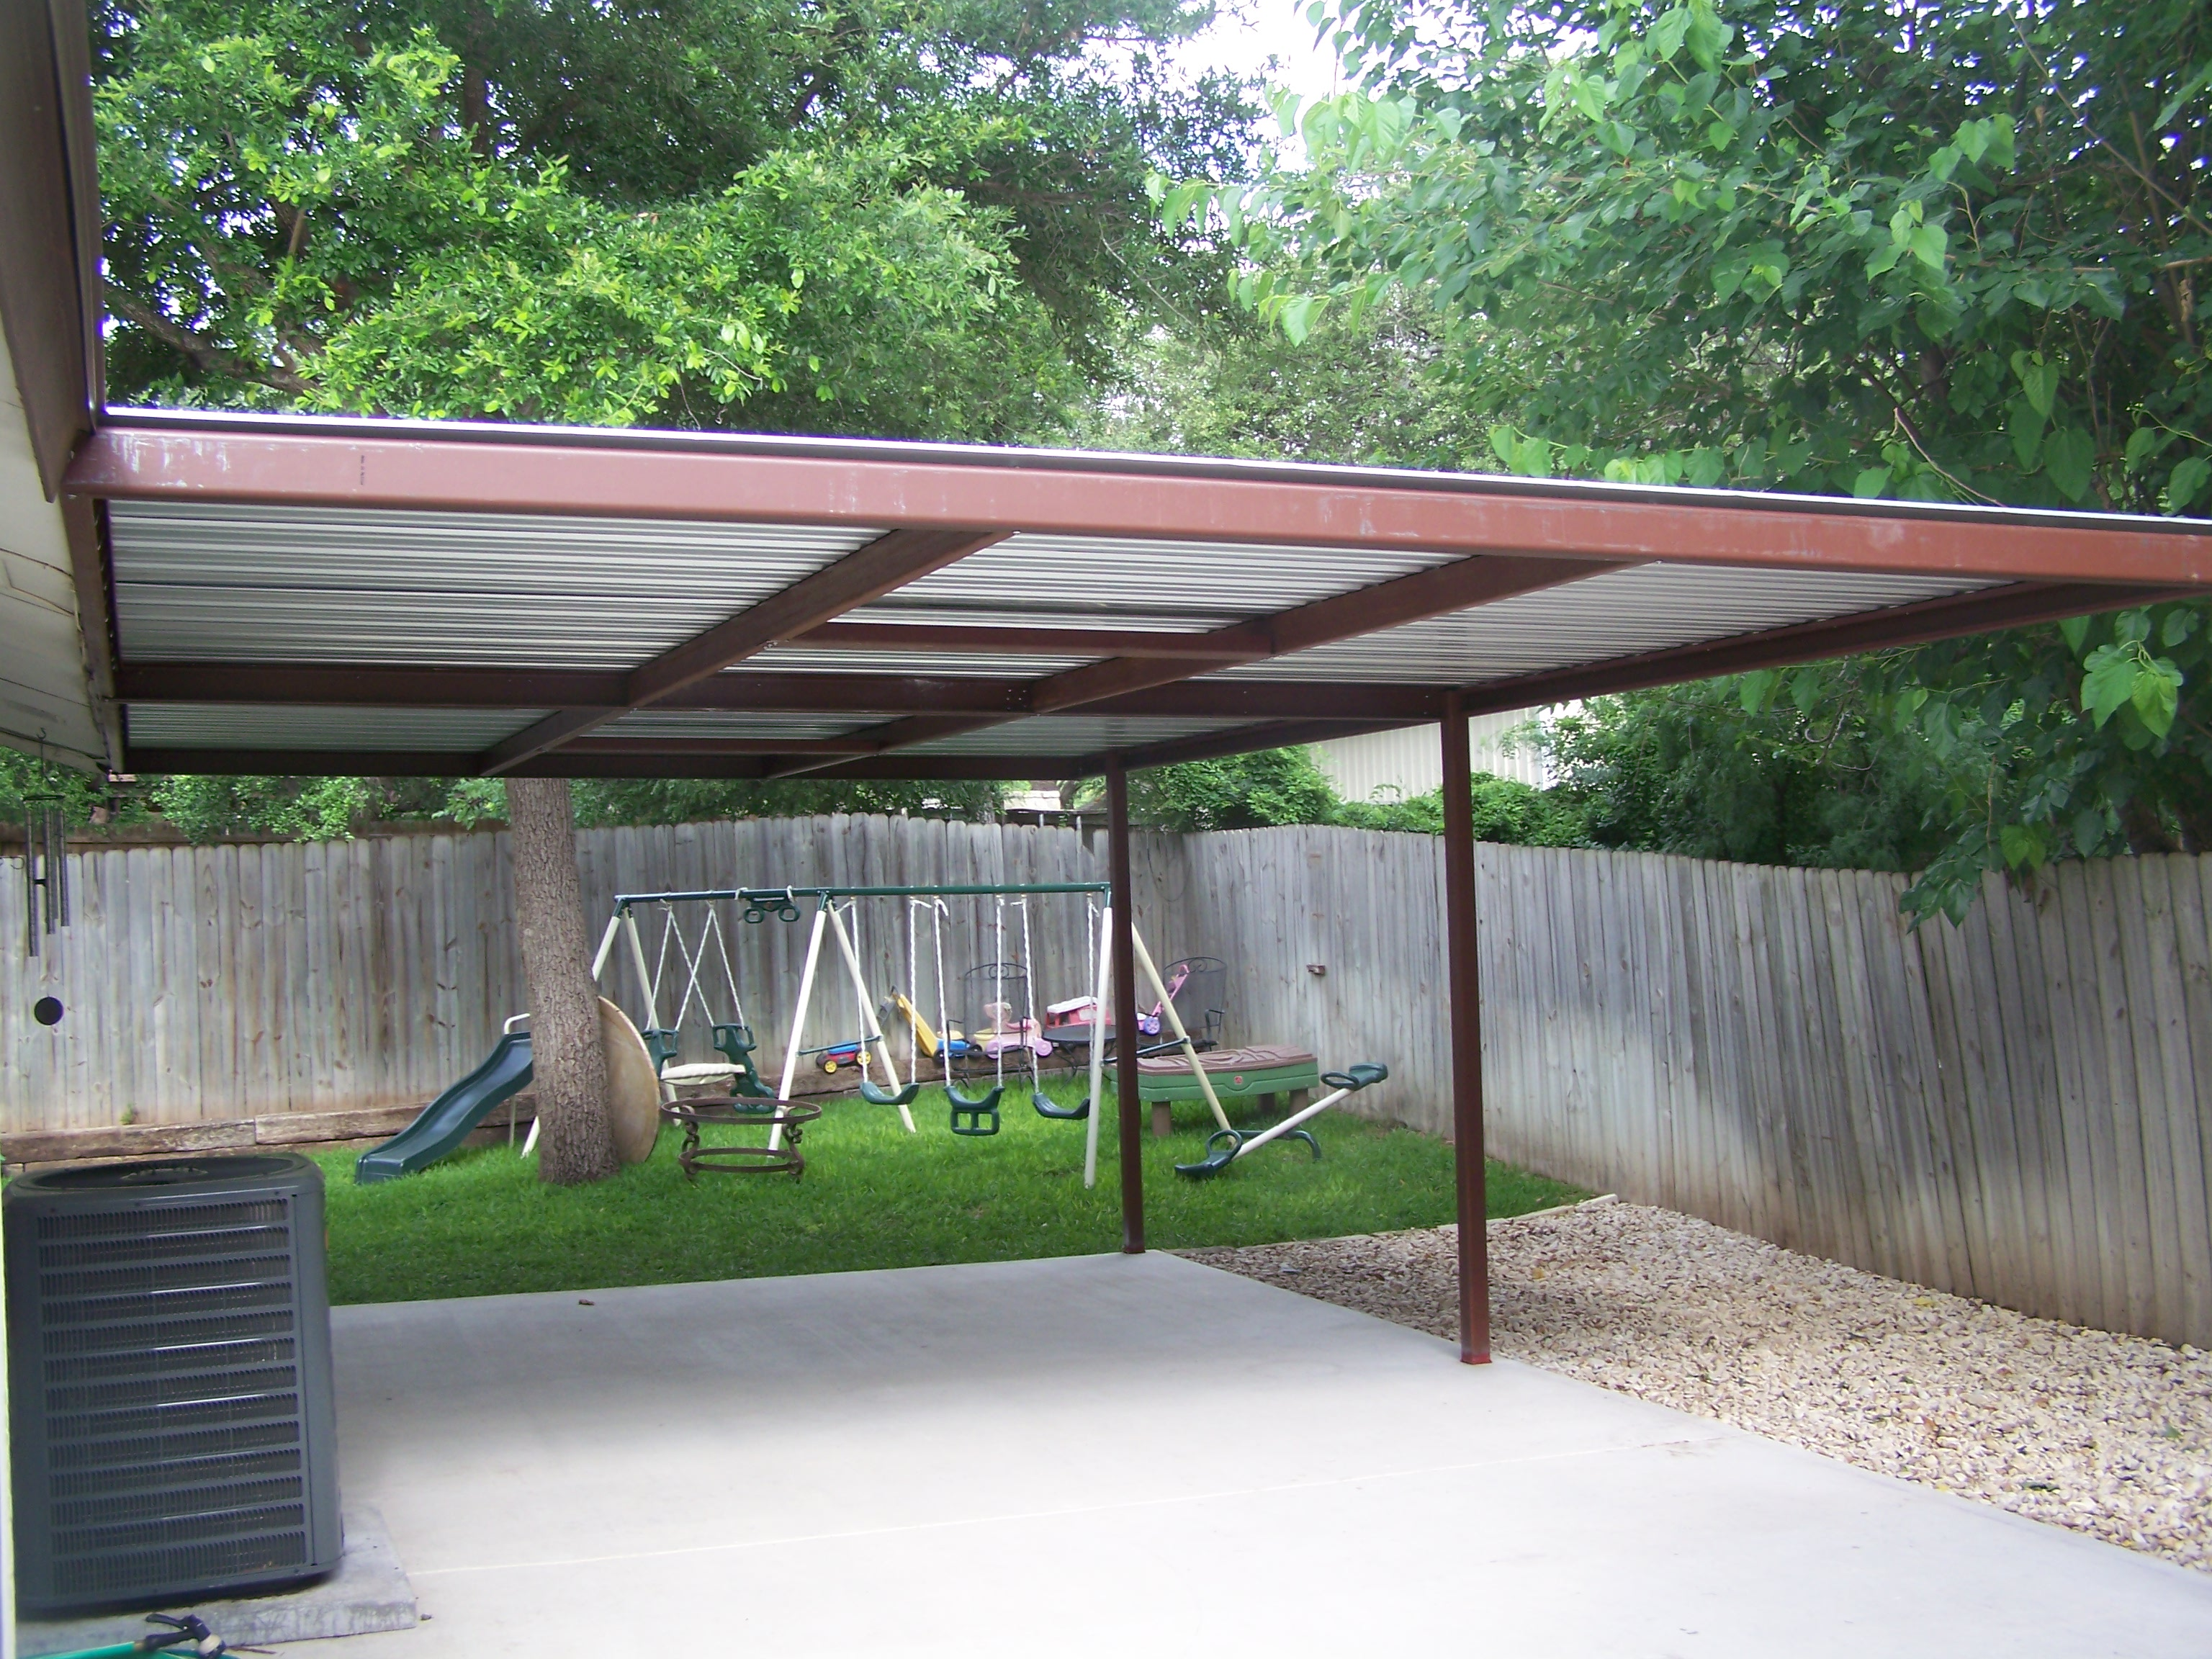 14x24 10 carport patio covers awnings san antonio. Black Bedroom Furniture Sets. Home Design Ideas